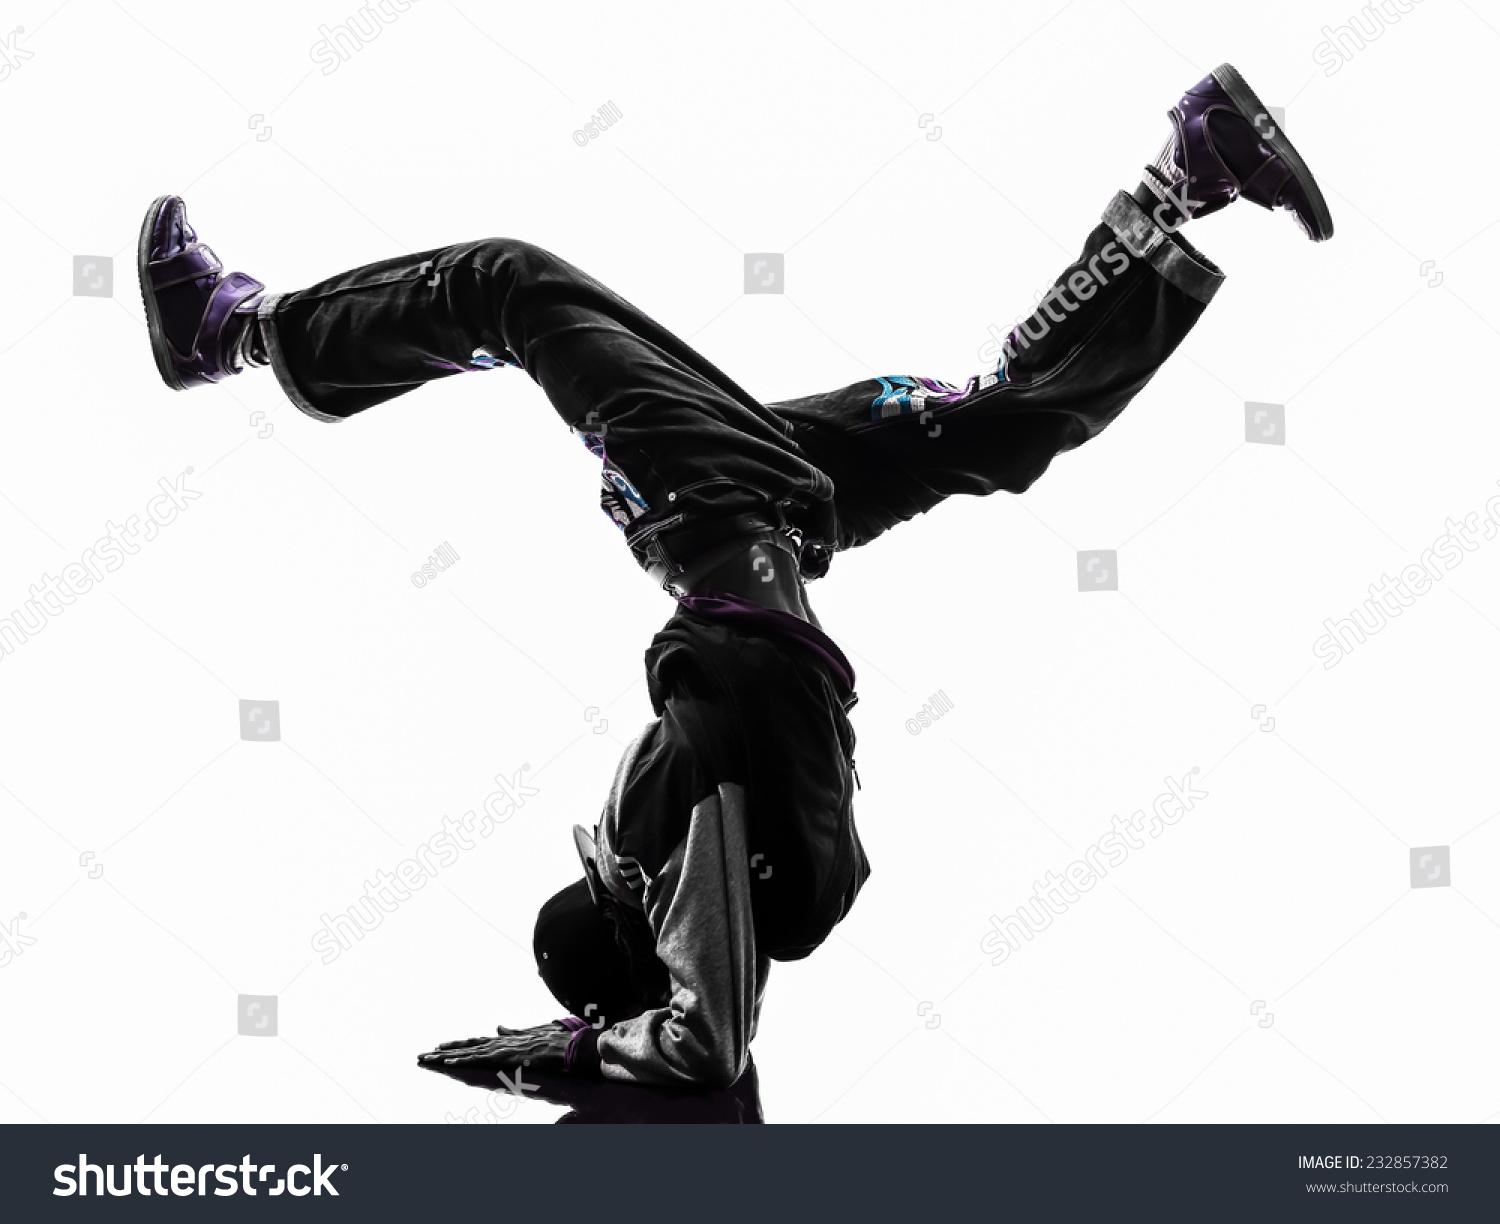 19d0b8ad0 Royalty-free stock photo ID: 232857382. one hip hop acrobatic break dancer  breakdancing young man handstand silhouette white background - Image